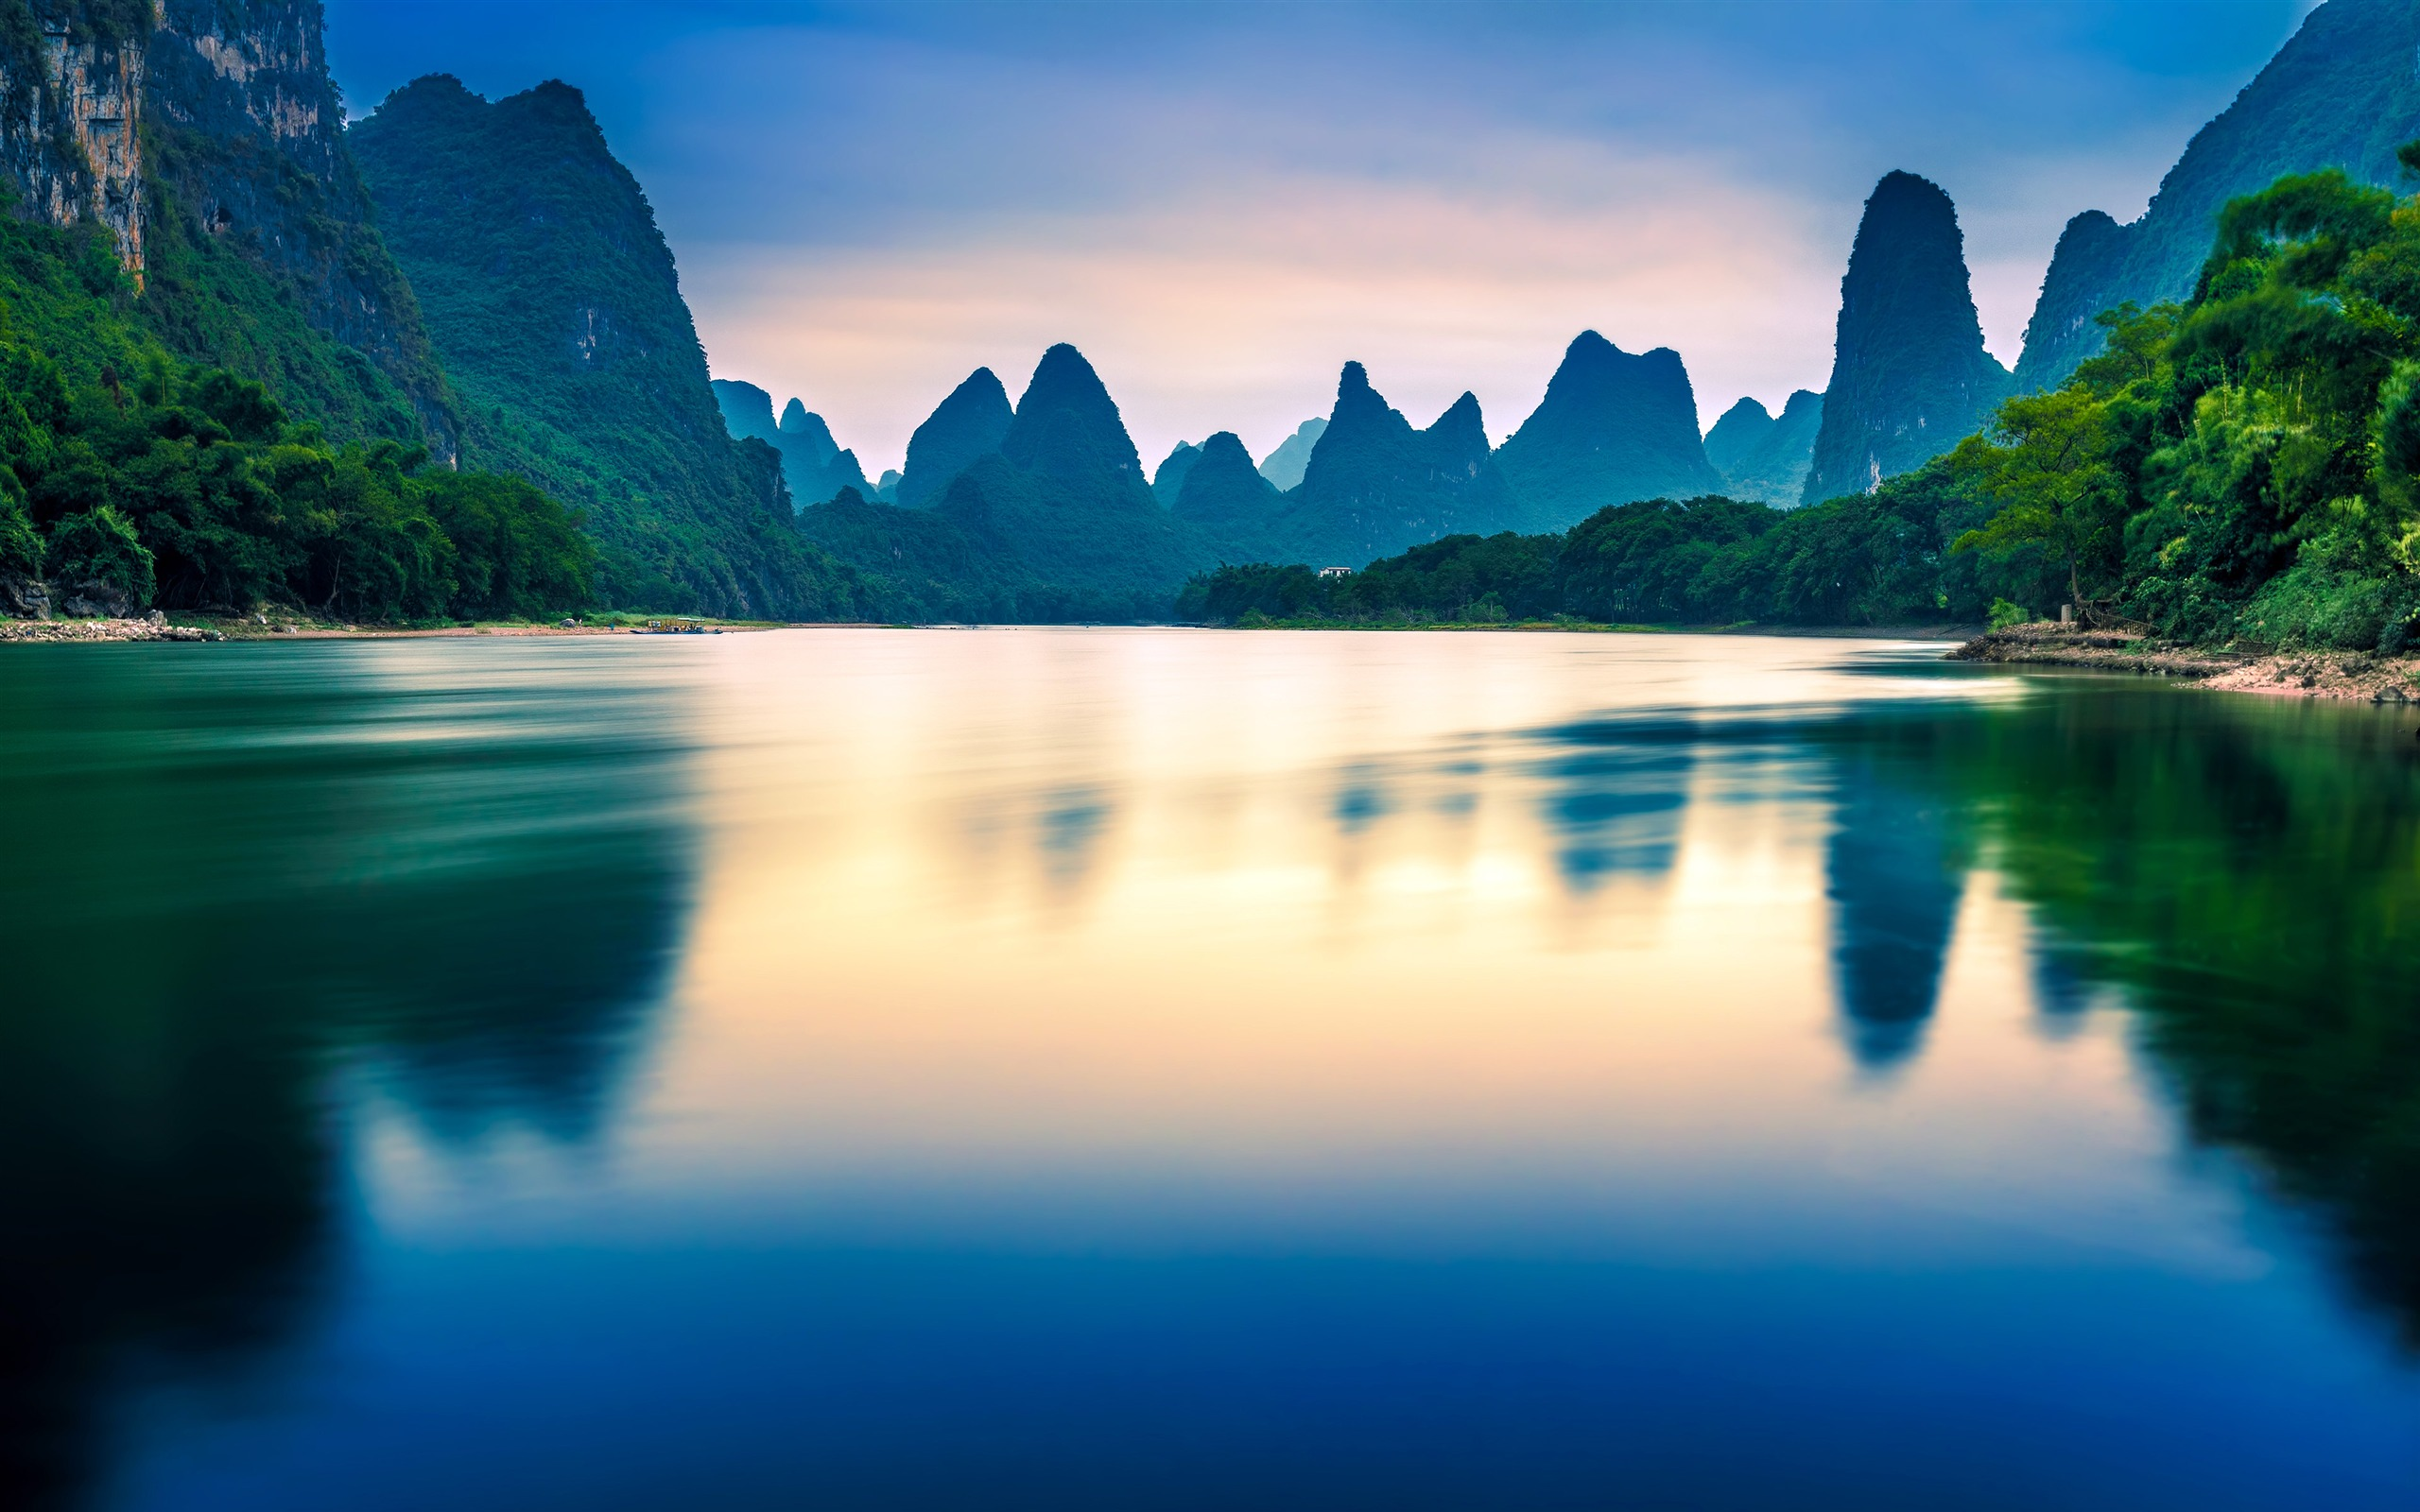 China Beautiful Nature Scenery Alpine River Preview